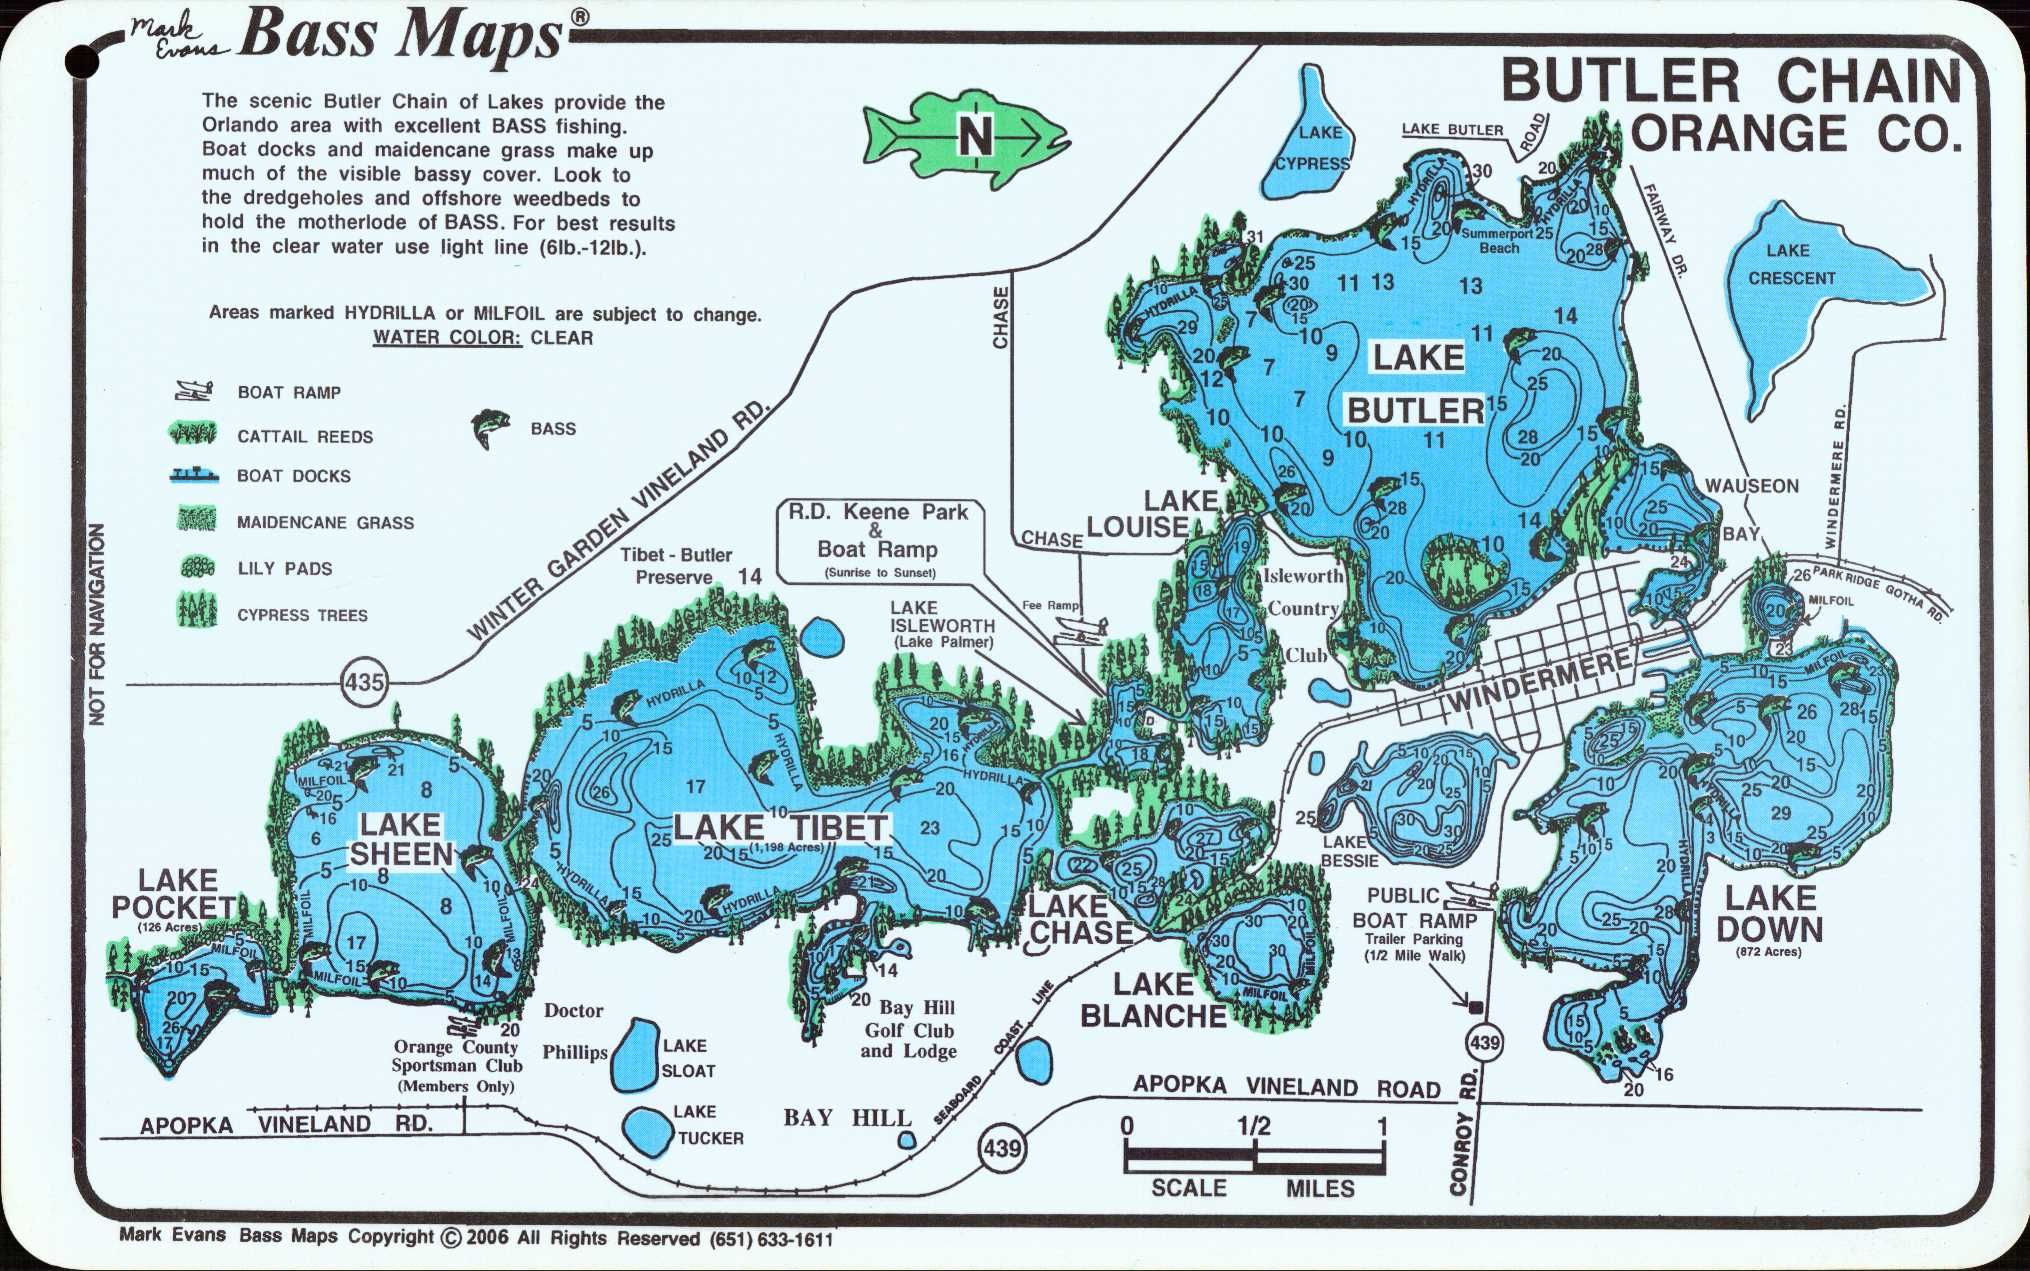 Butler Chain Of Lakes Home  Florida Bass Maps  Orlando Area - Map of florida orlando area